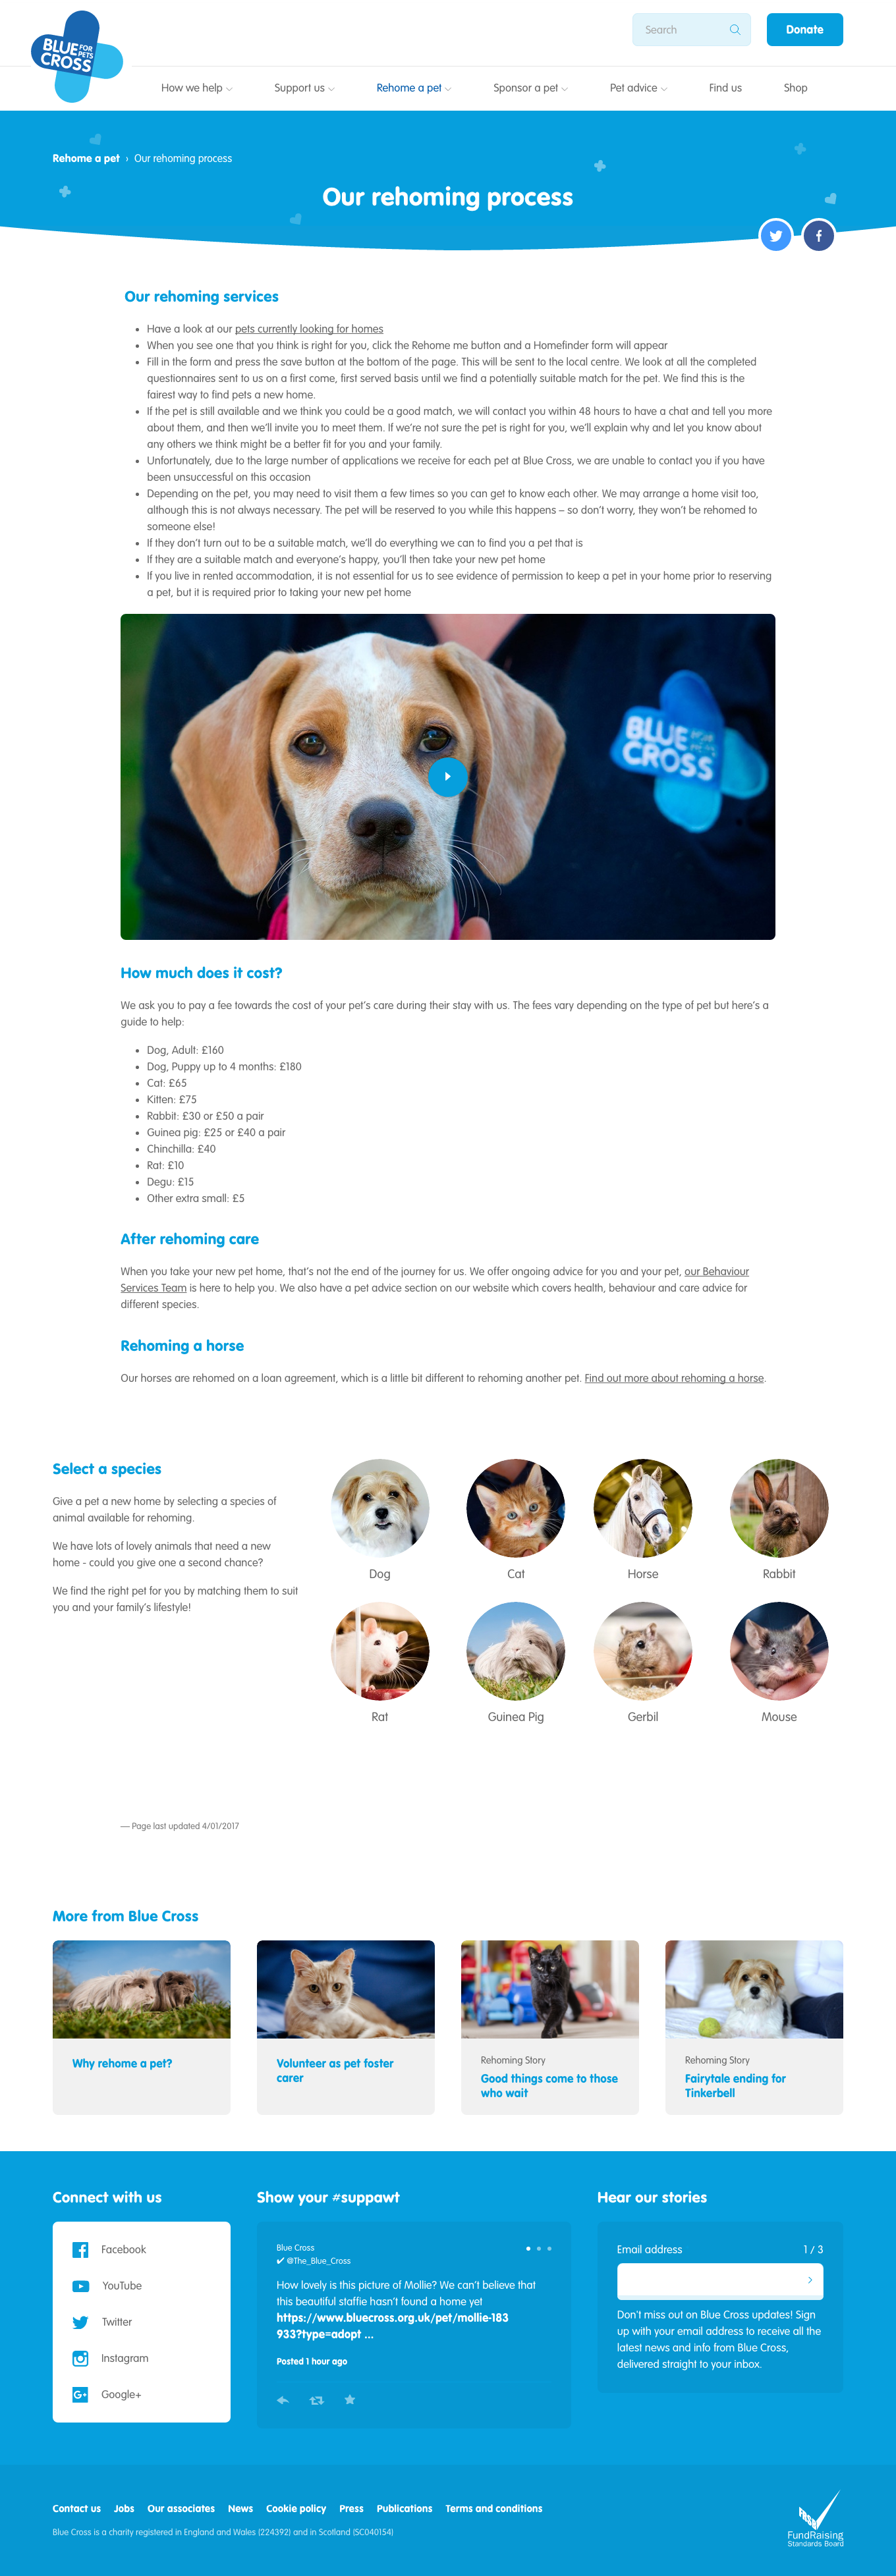 All Things Canine - Dog Website Of The Week - Blue Cross